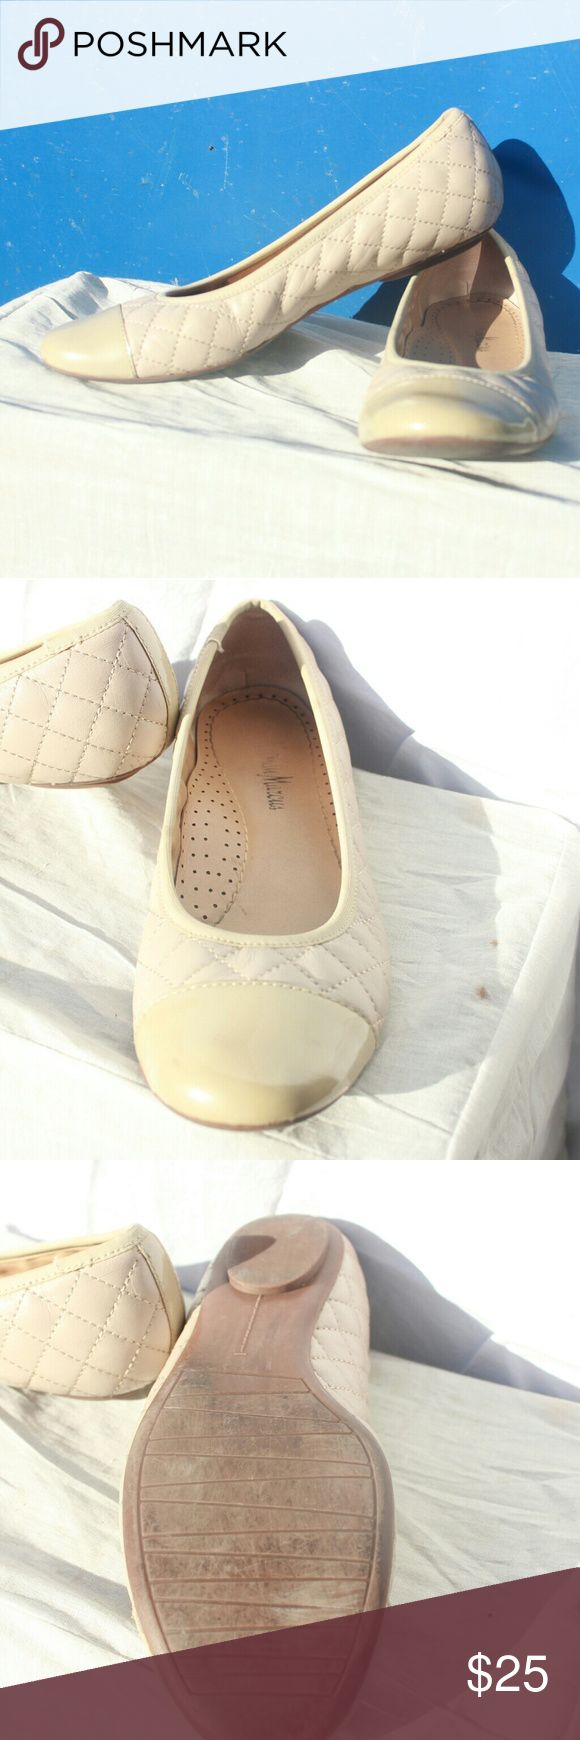 Neiman Marcus ballet Flats Great condition Patient leather Small heels Neiman Marcus Shoes Flats & Loafers